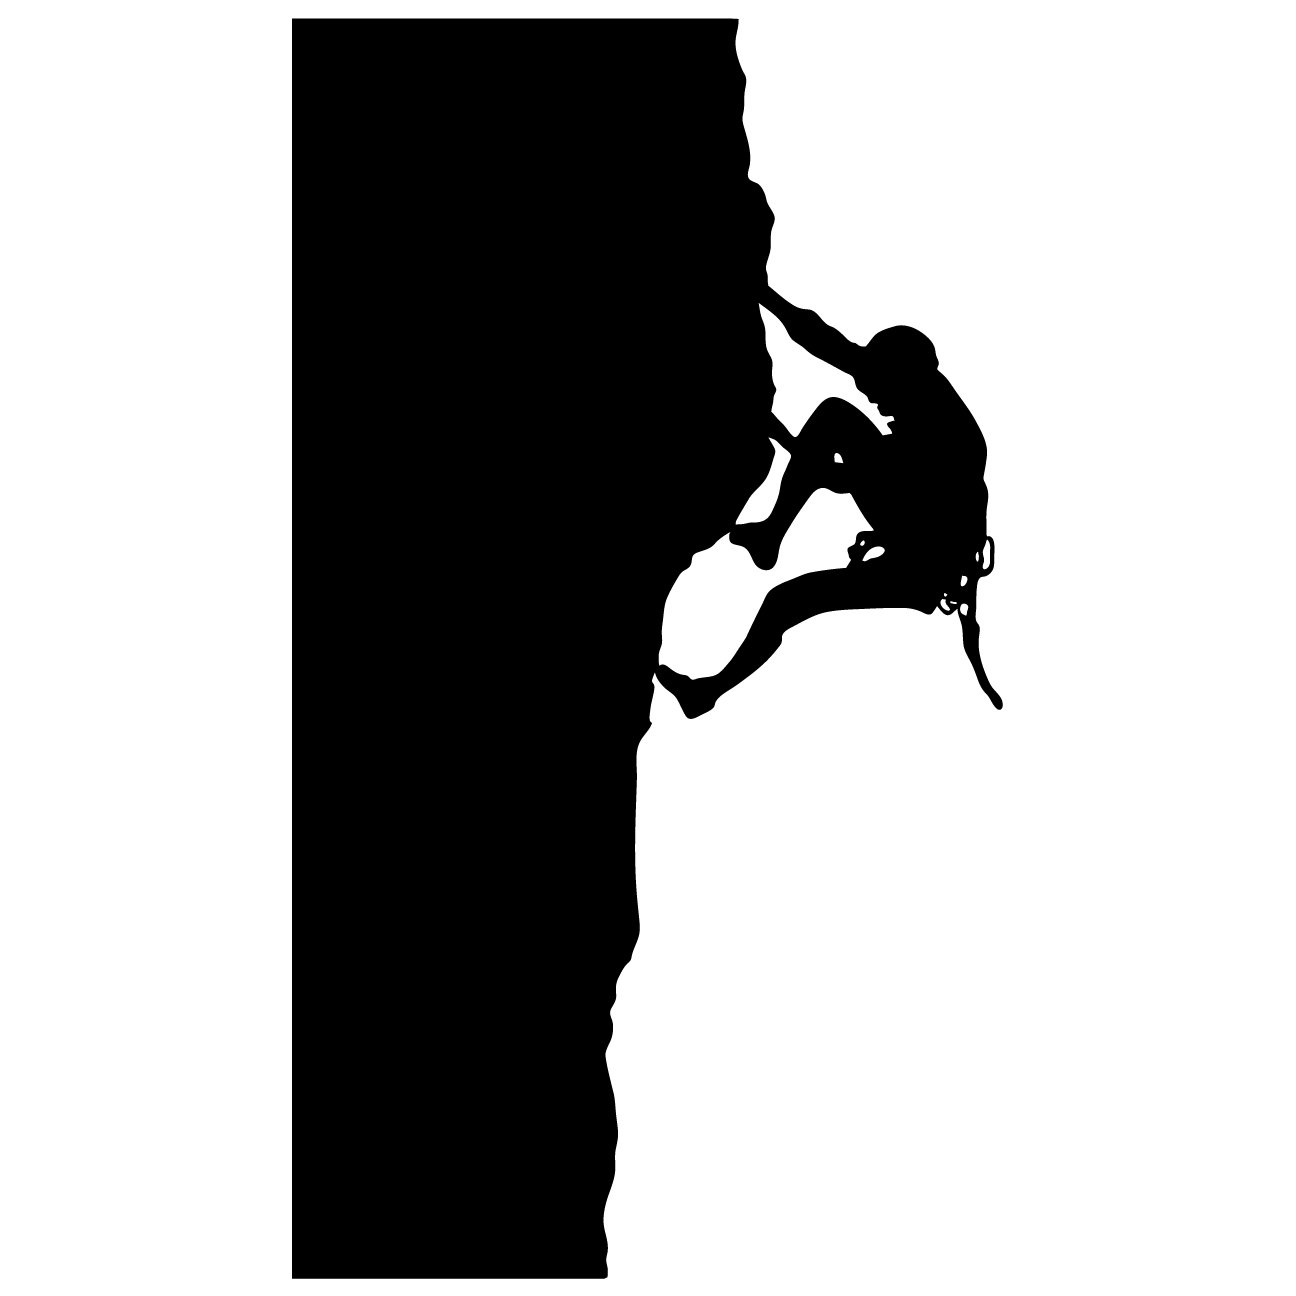 Russell Bartholomee Wallpapers Climber Silhouette Amazon com Rock Climbing